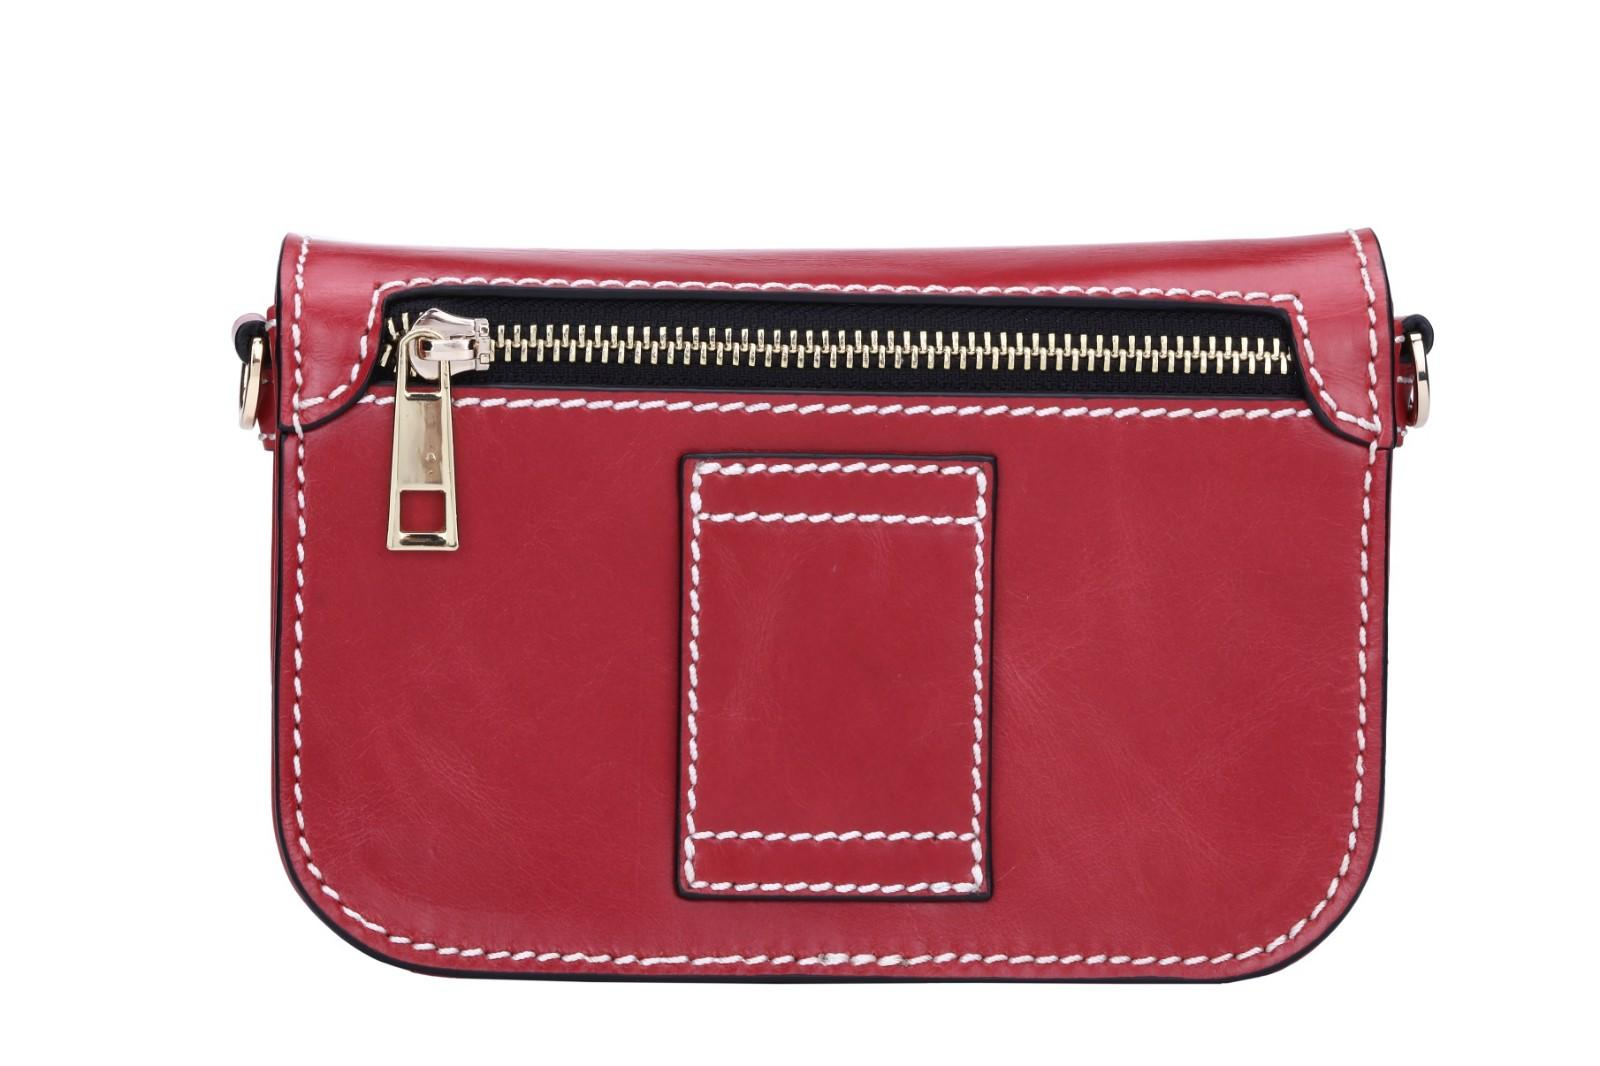 GF bags wholesale hand clutch purse call us for women